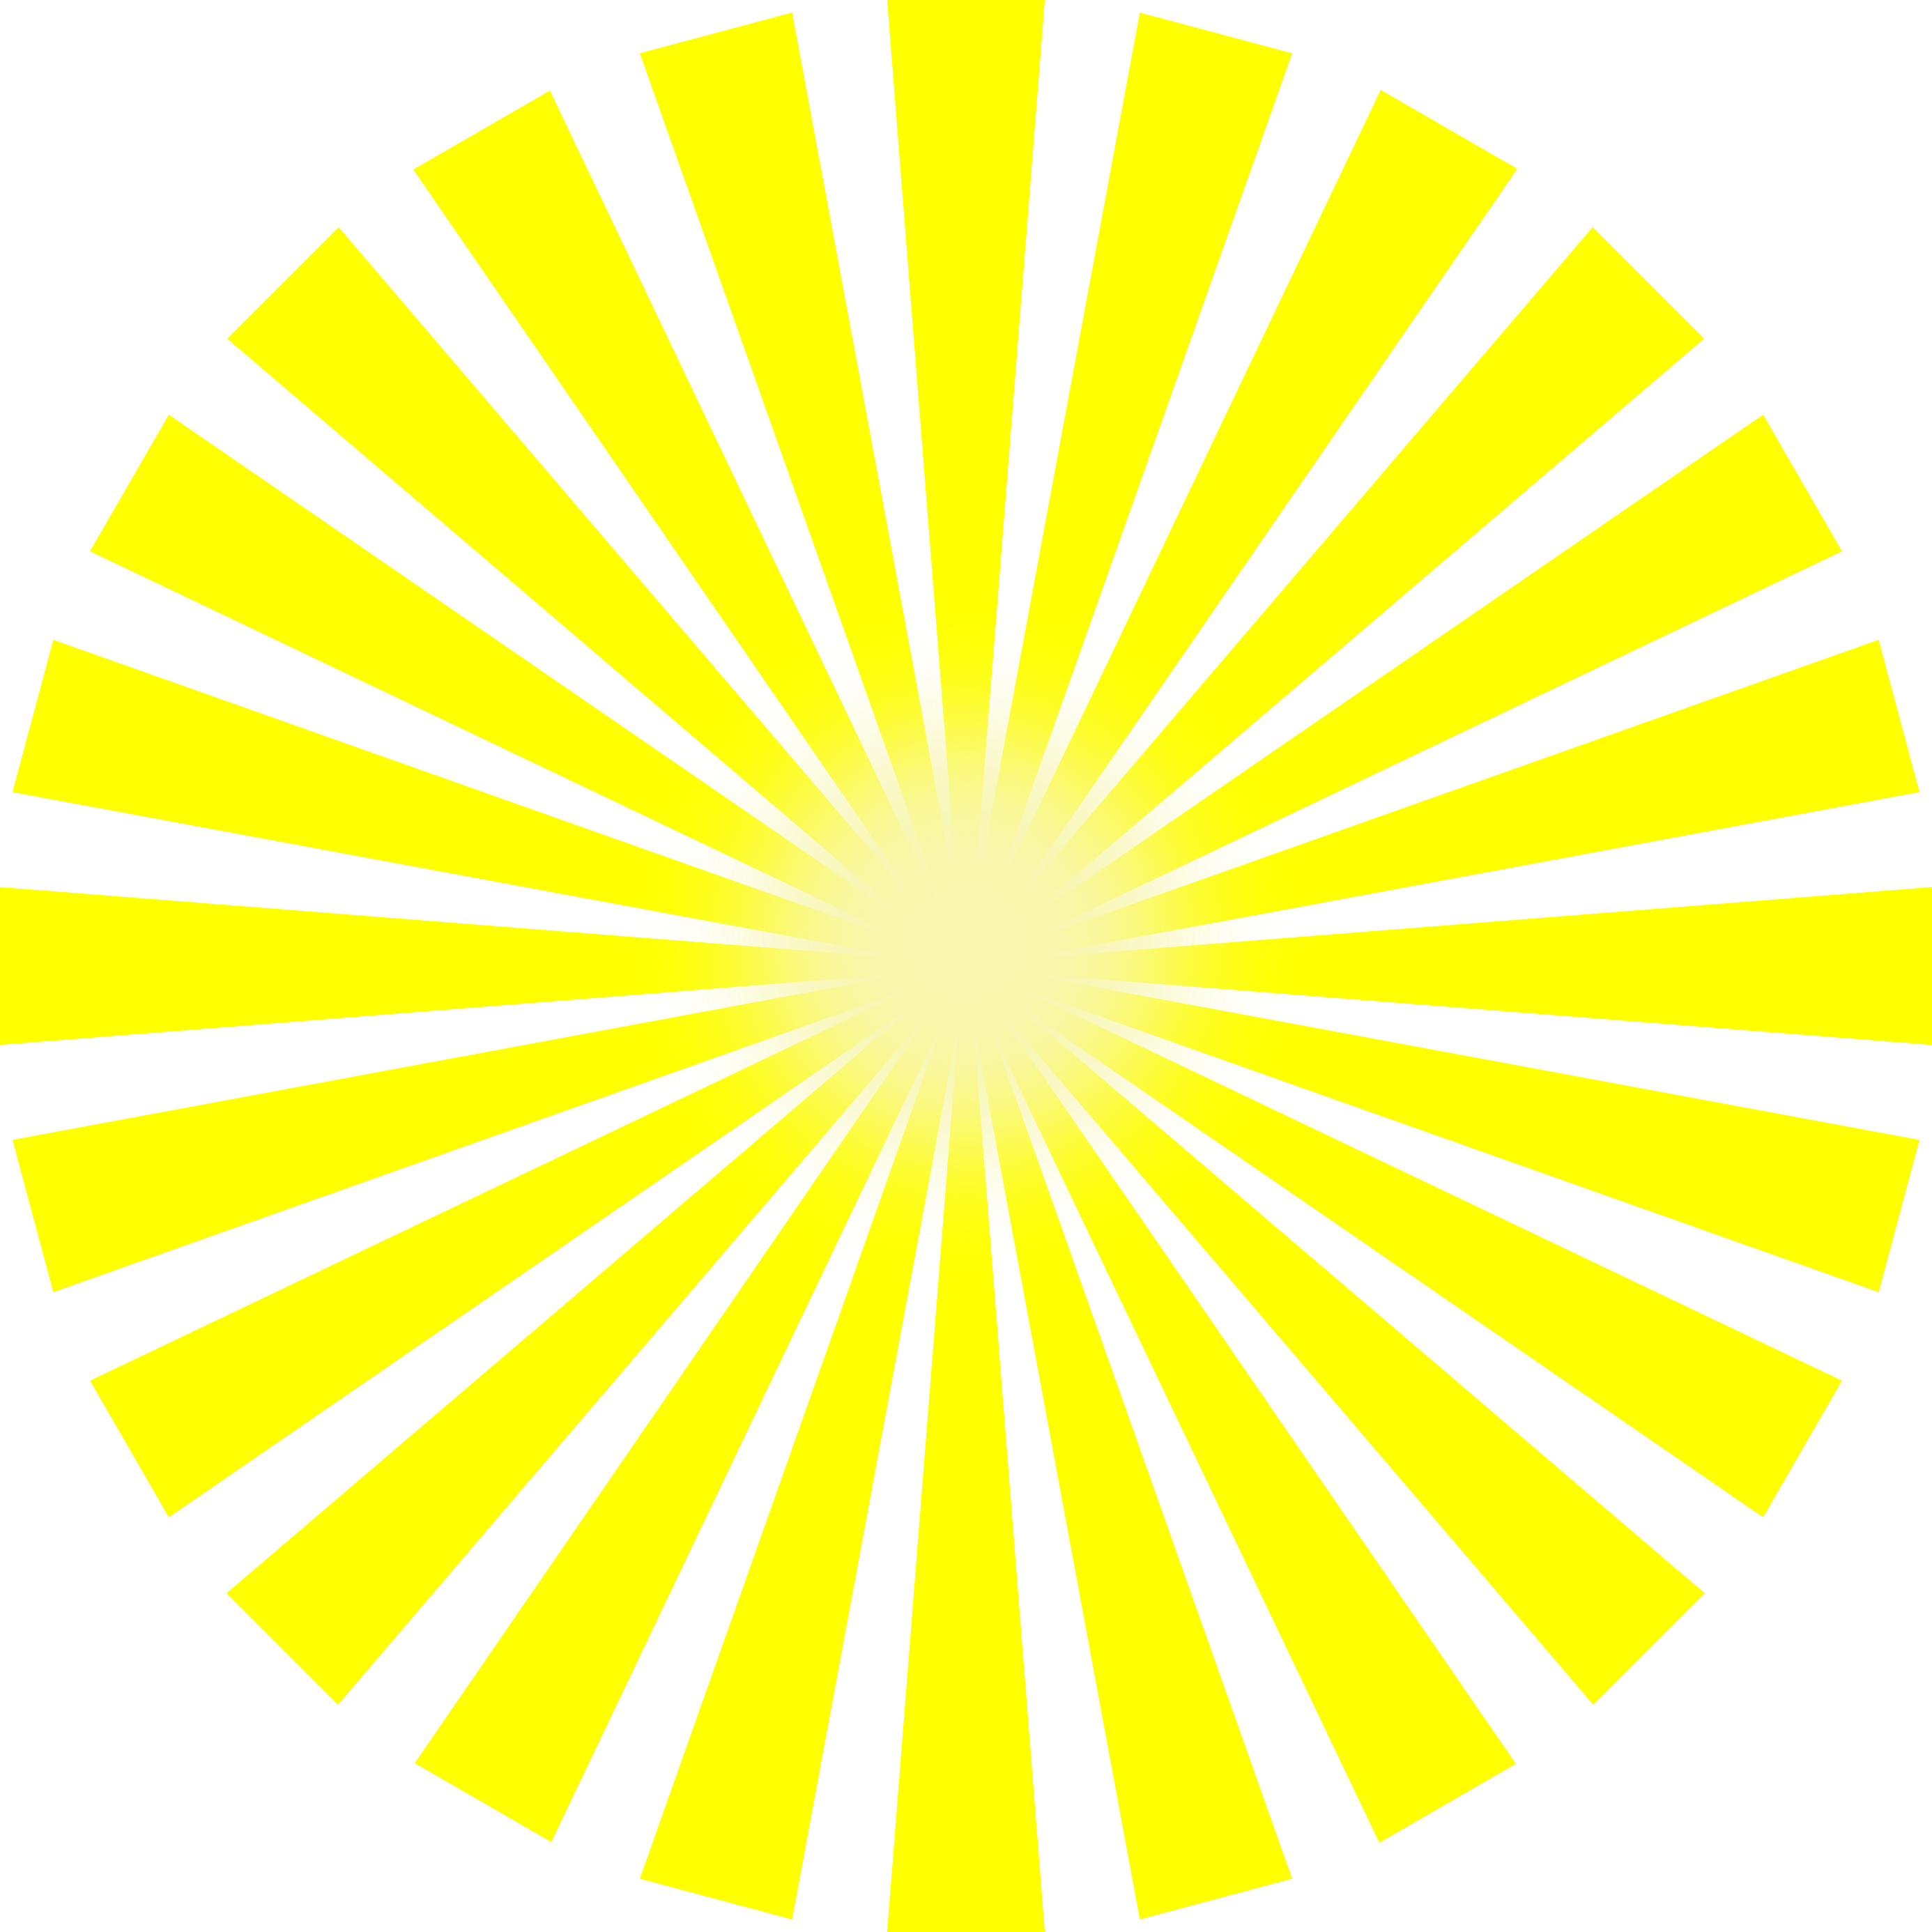 Cross with sun rays clipart picture royalty free 28+ Collection of Ray Clipart Png | High quality, free cliparts ... picture royalty free